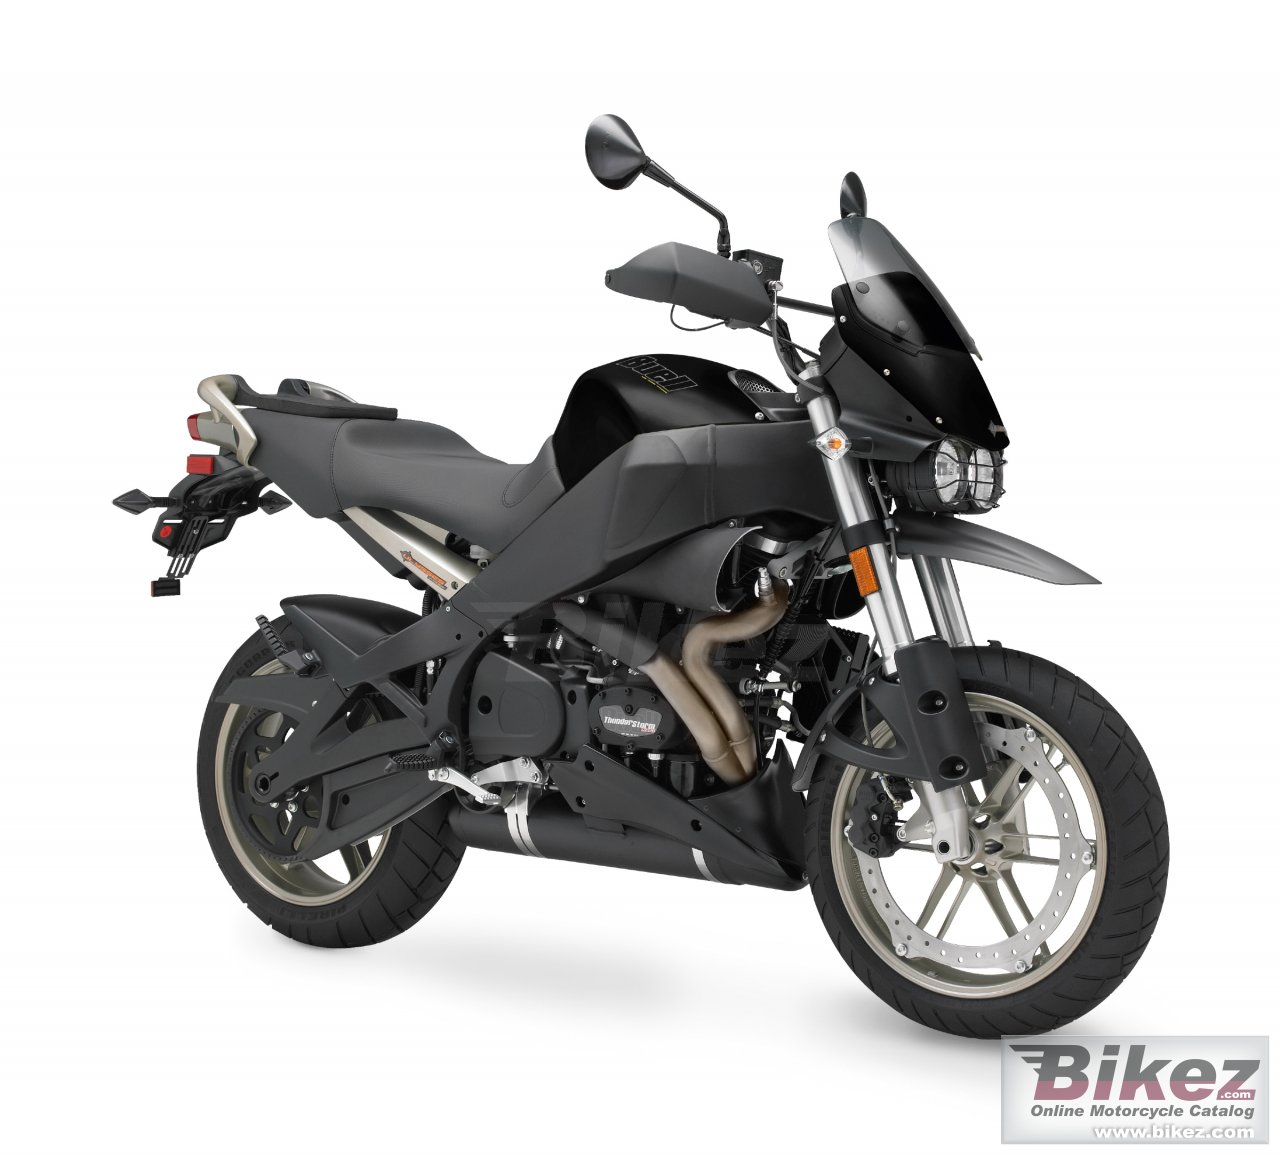 Big Buell xb12x ulysses picture and wallpaper from Bikez.com